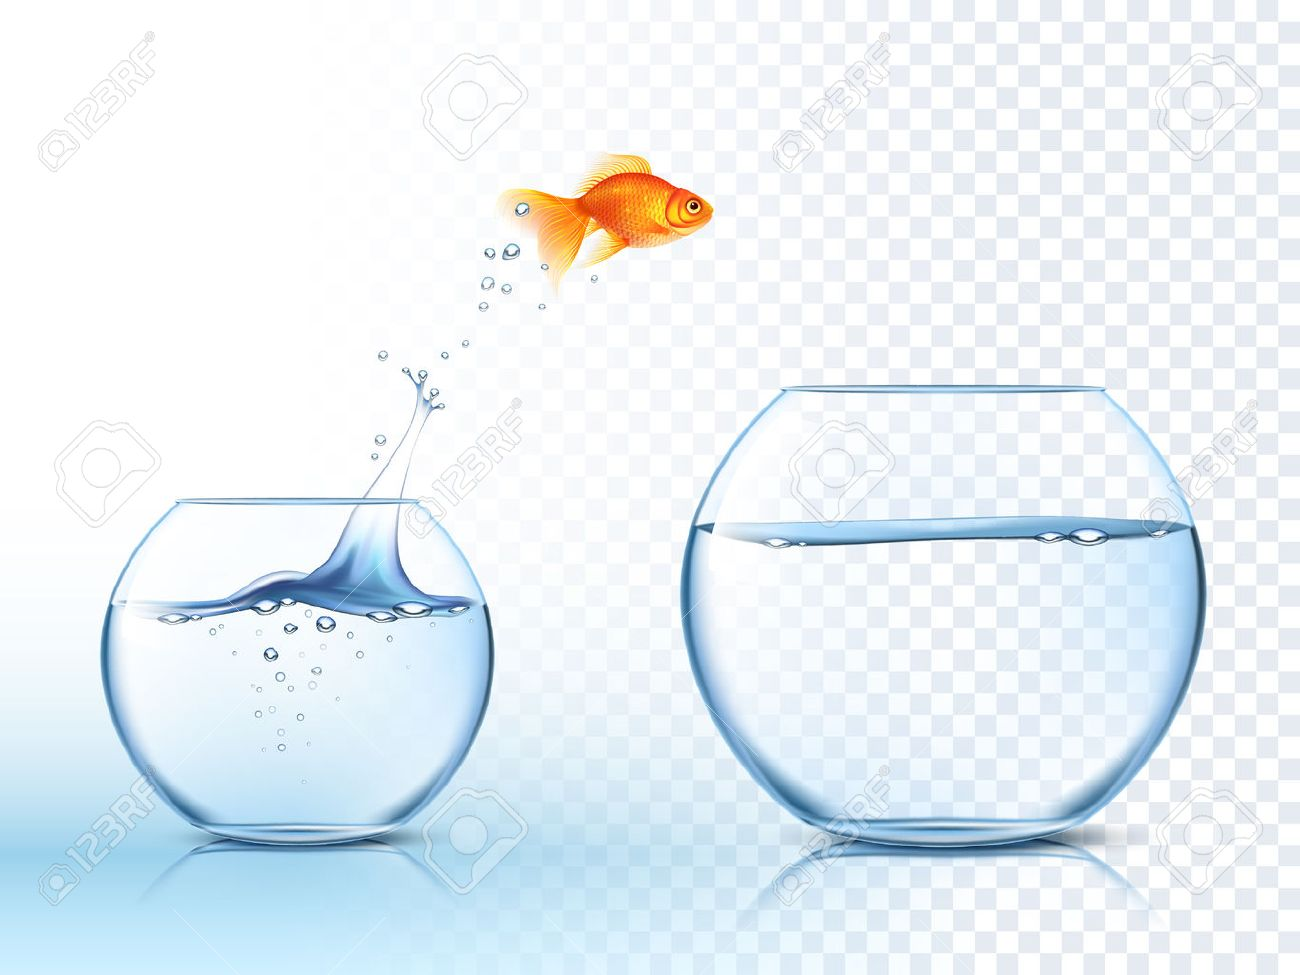 Goldfish jumping out one fishbowl to another aquarium with clear water against light checkered background poster vector illustration - 51757438